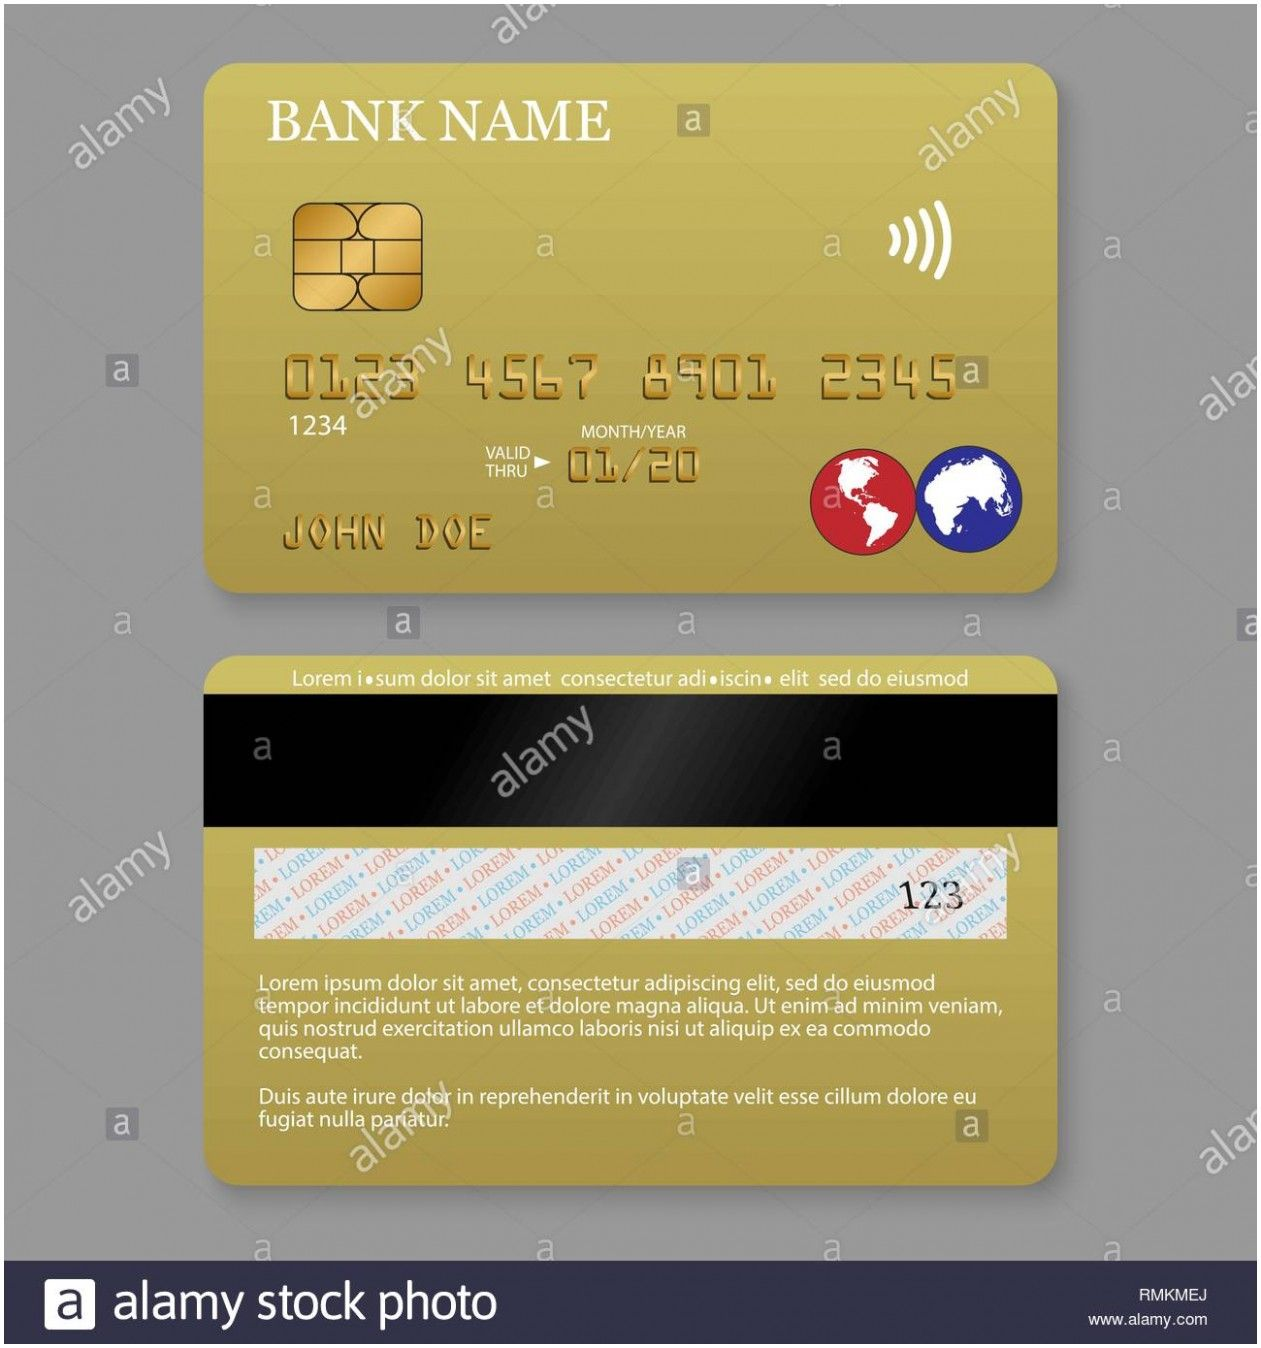 Ten Things You Should Know Before Embarking On Real Front Back Credit Card Real Front Back Credit Card Application Credit Card Design Credit Card